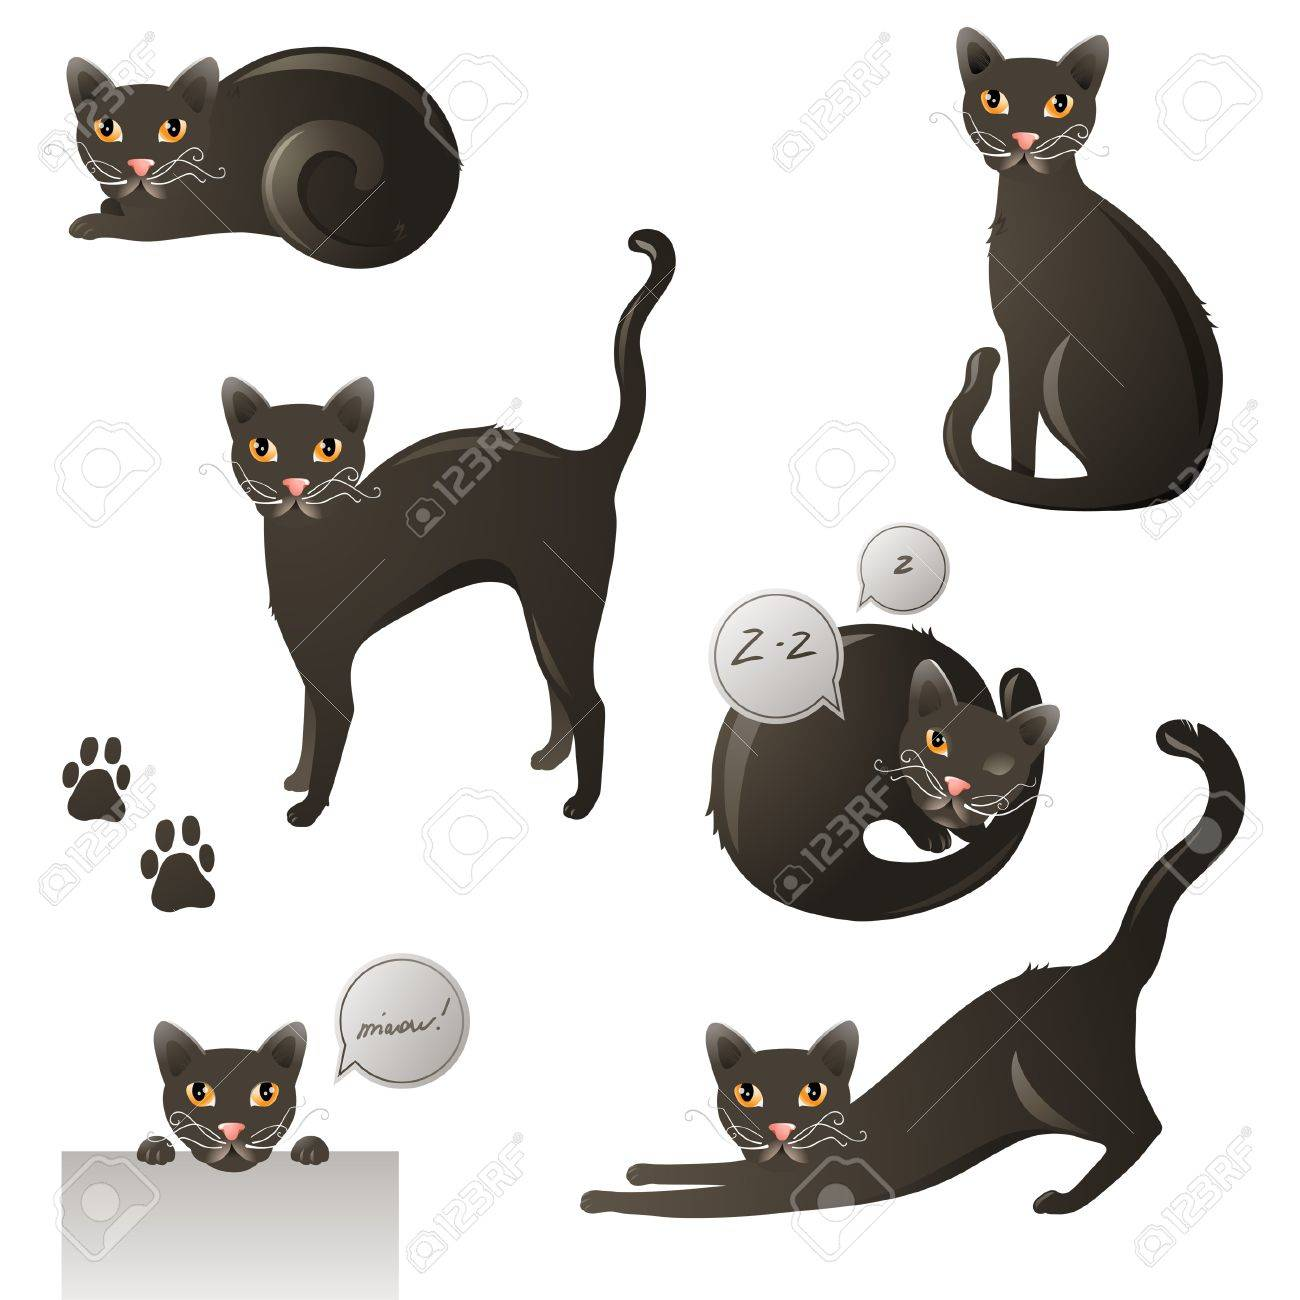 Yeloow - eyed black cat in 6 poses Stock Vector - 16029145